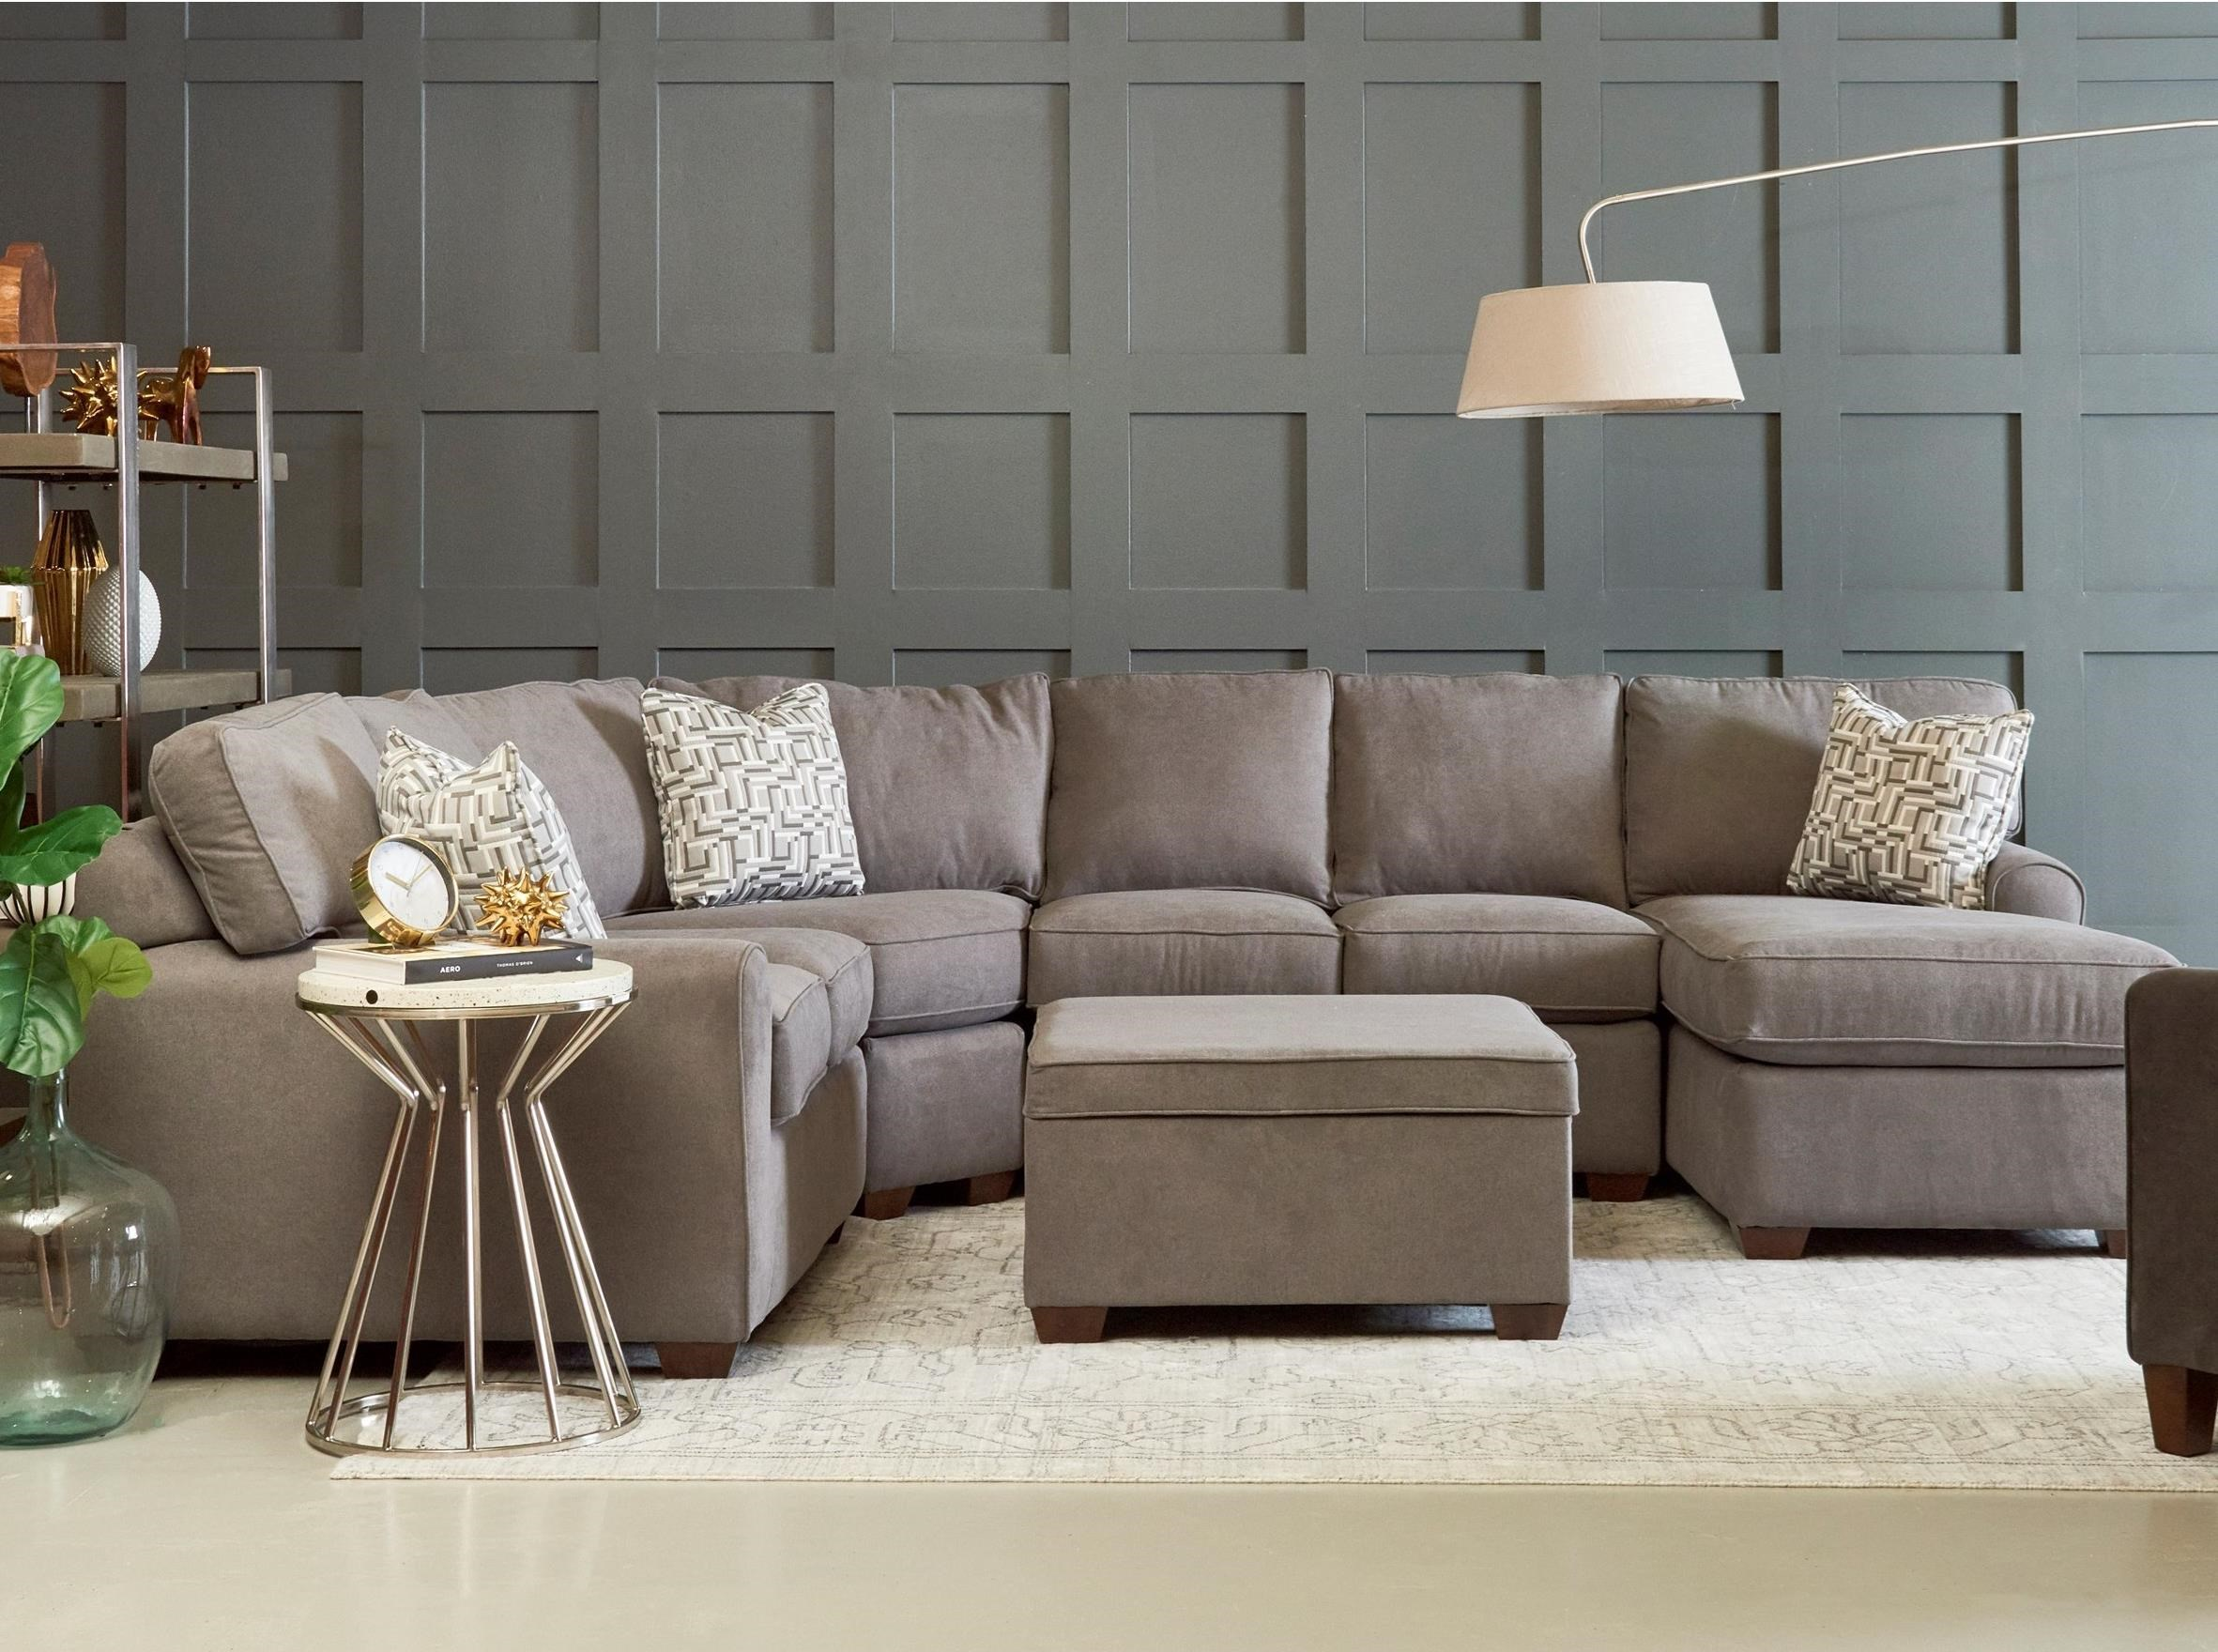 Four Piece Sectional Sofa with Right Facing Chaise